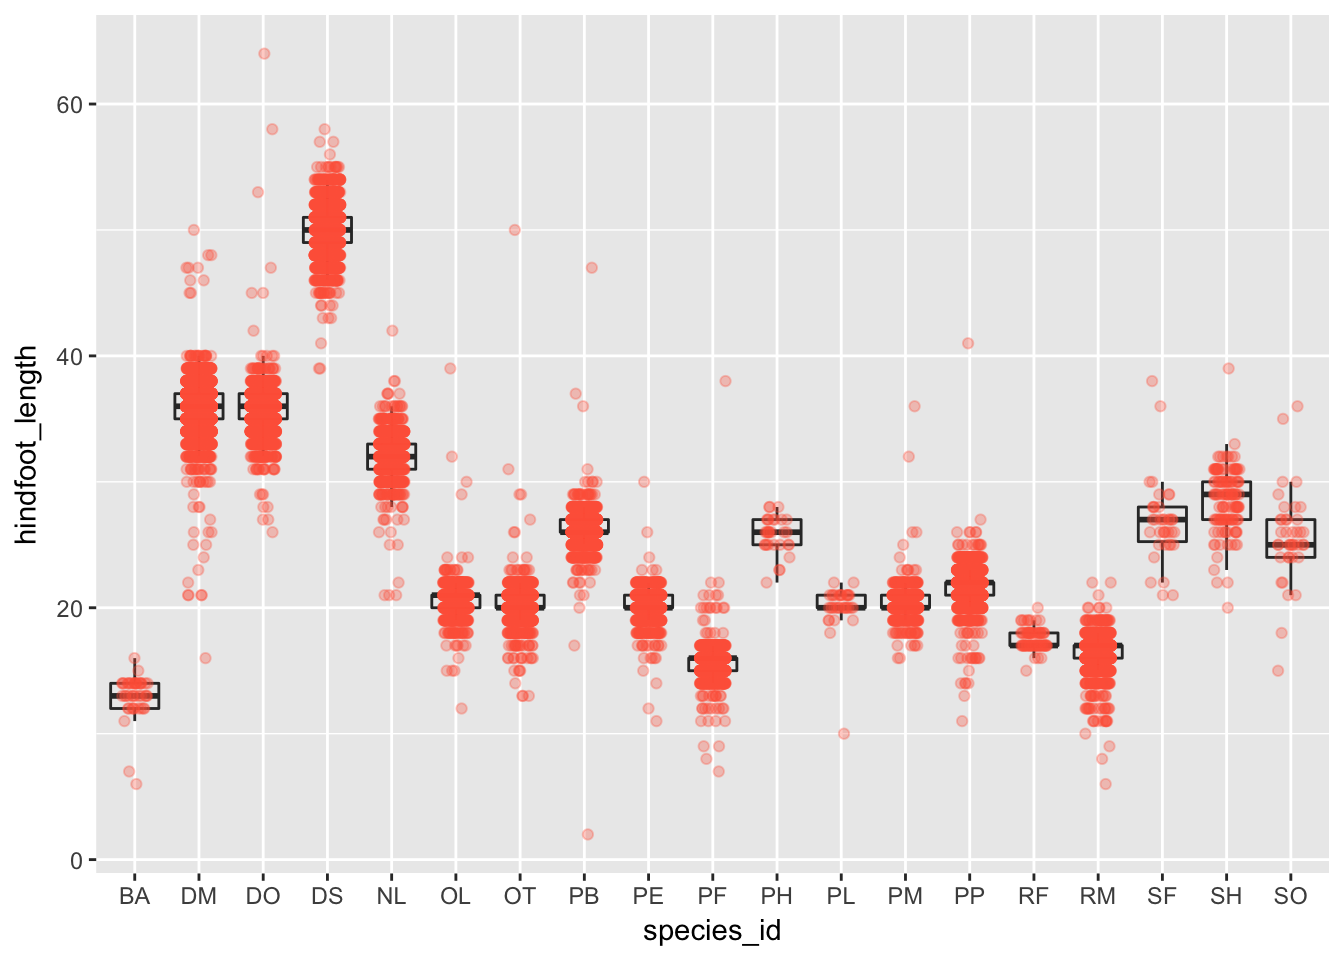 Plotting with ggplot2